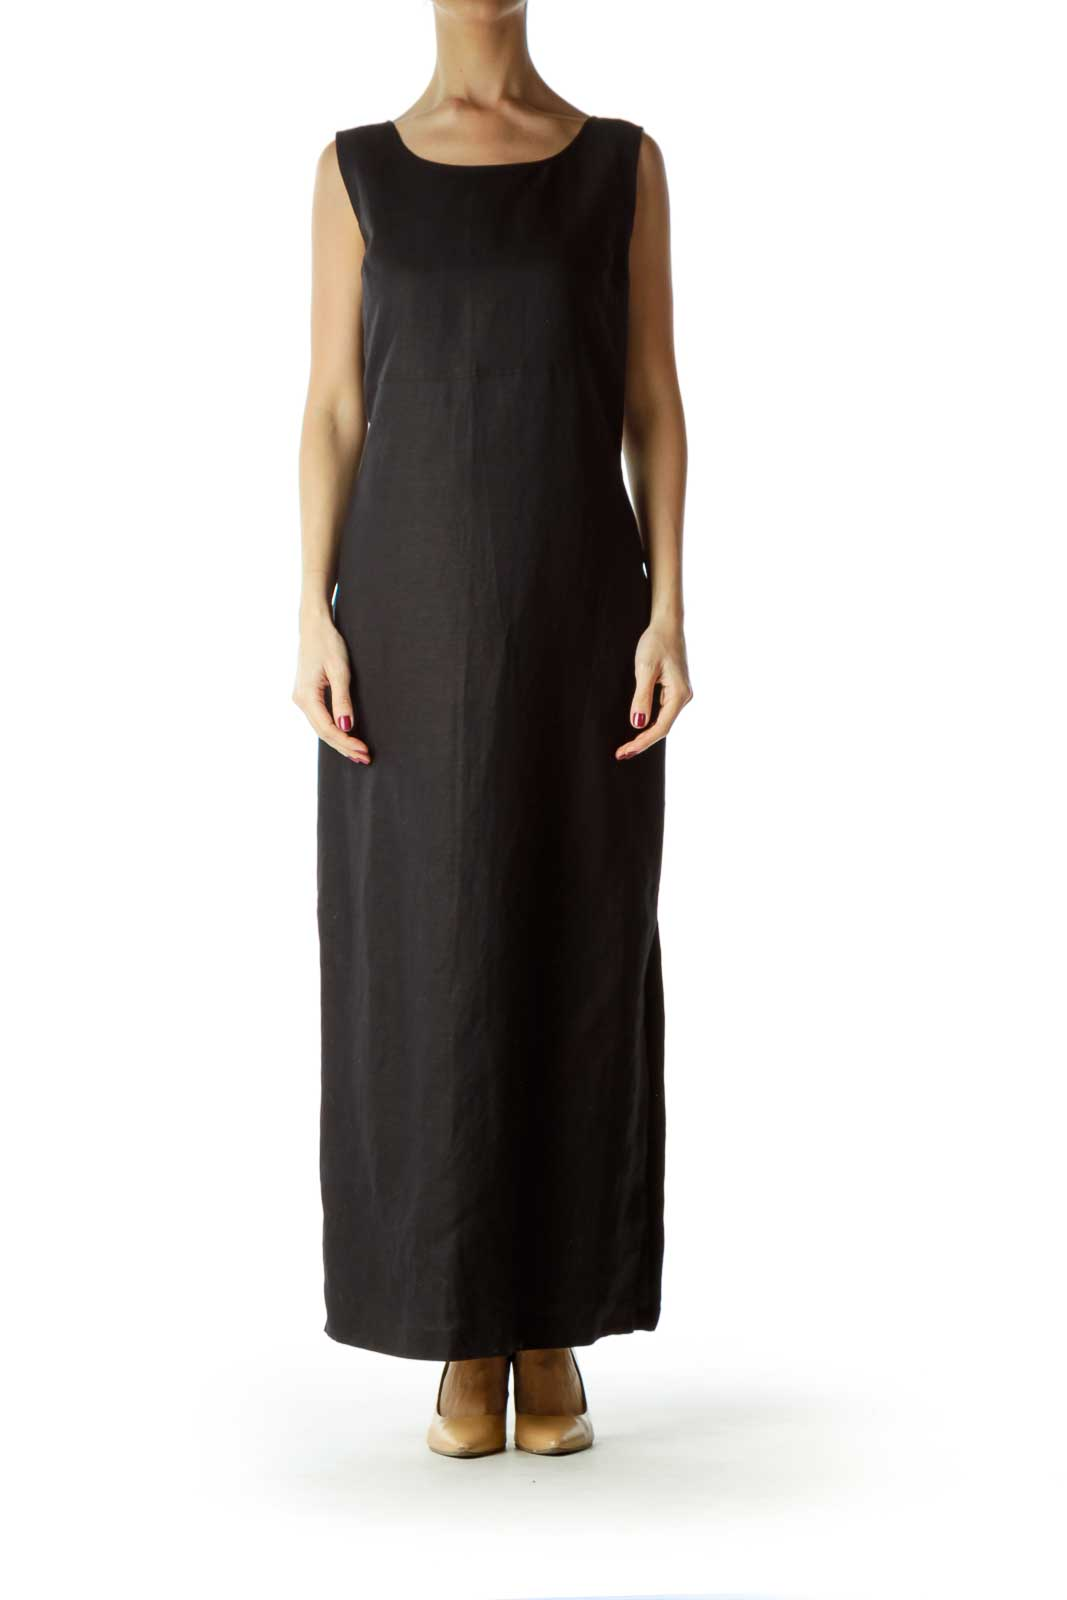 Black Sleeveless Linen Blend Maxi Work Dress Front